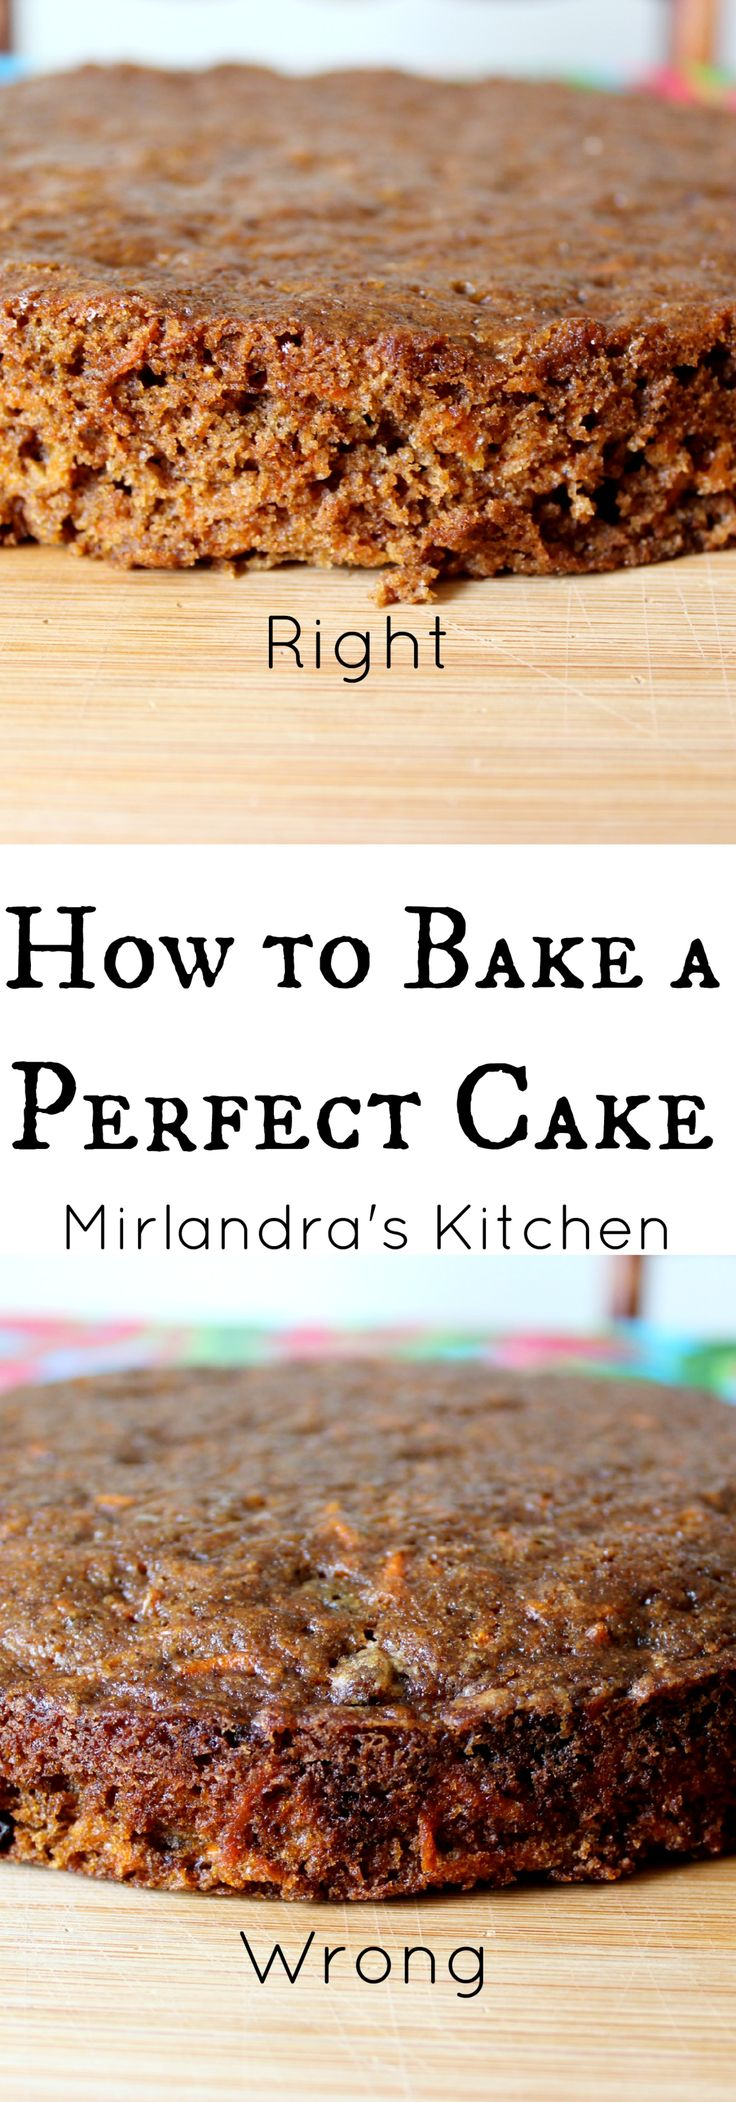 Follow these easy steps to bake a perfect cake that is moist and tender.  Your cake will rise flat every time and there is no special equipment required.